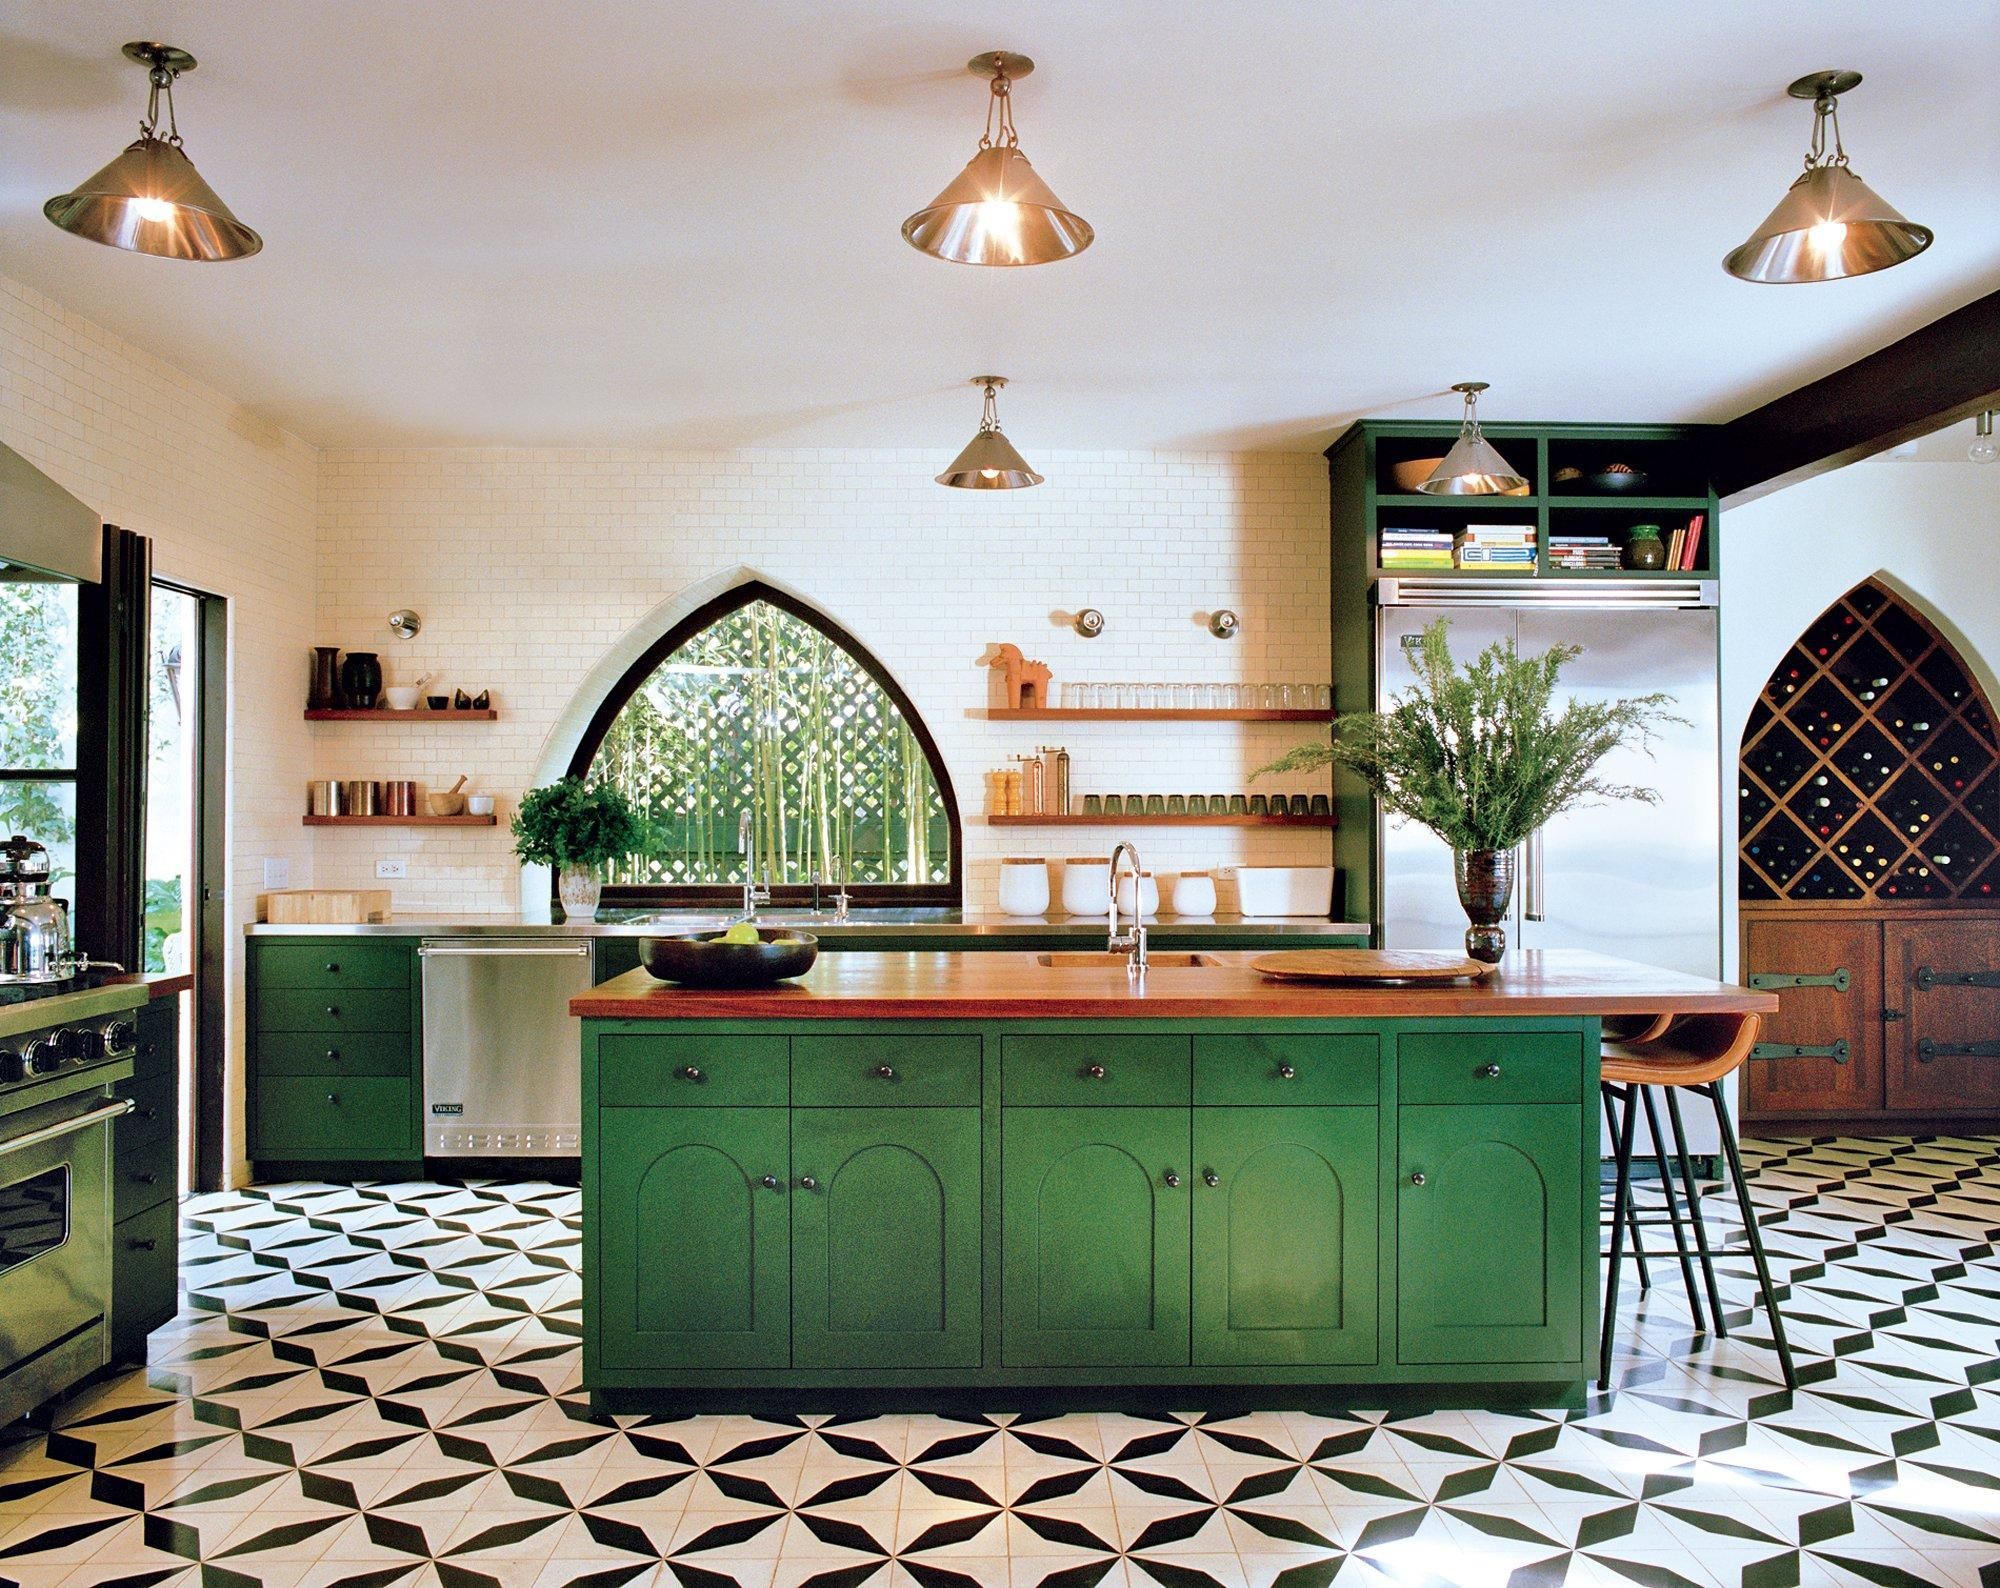 Charmant The 32 Most Beautiful Kitchens In Vogue To Inspire